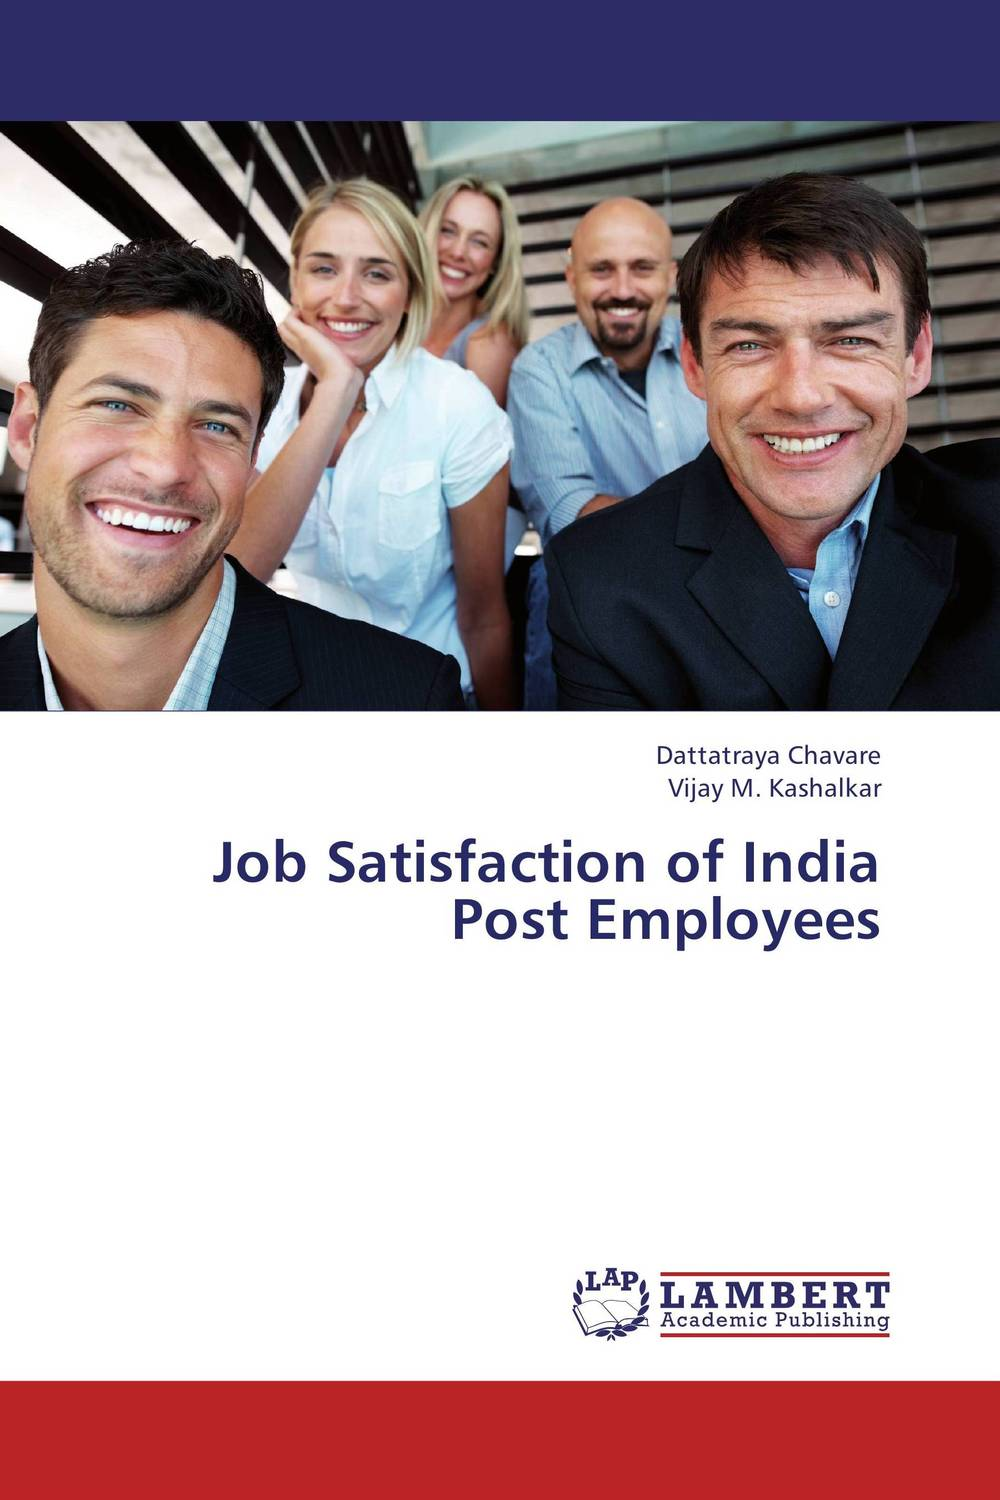 Job Satisfaction of India Post Employees impact of job satisfaction on turnover intentions